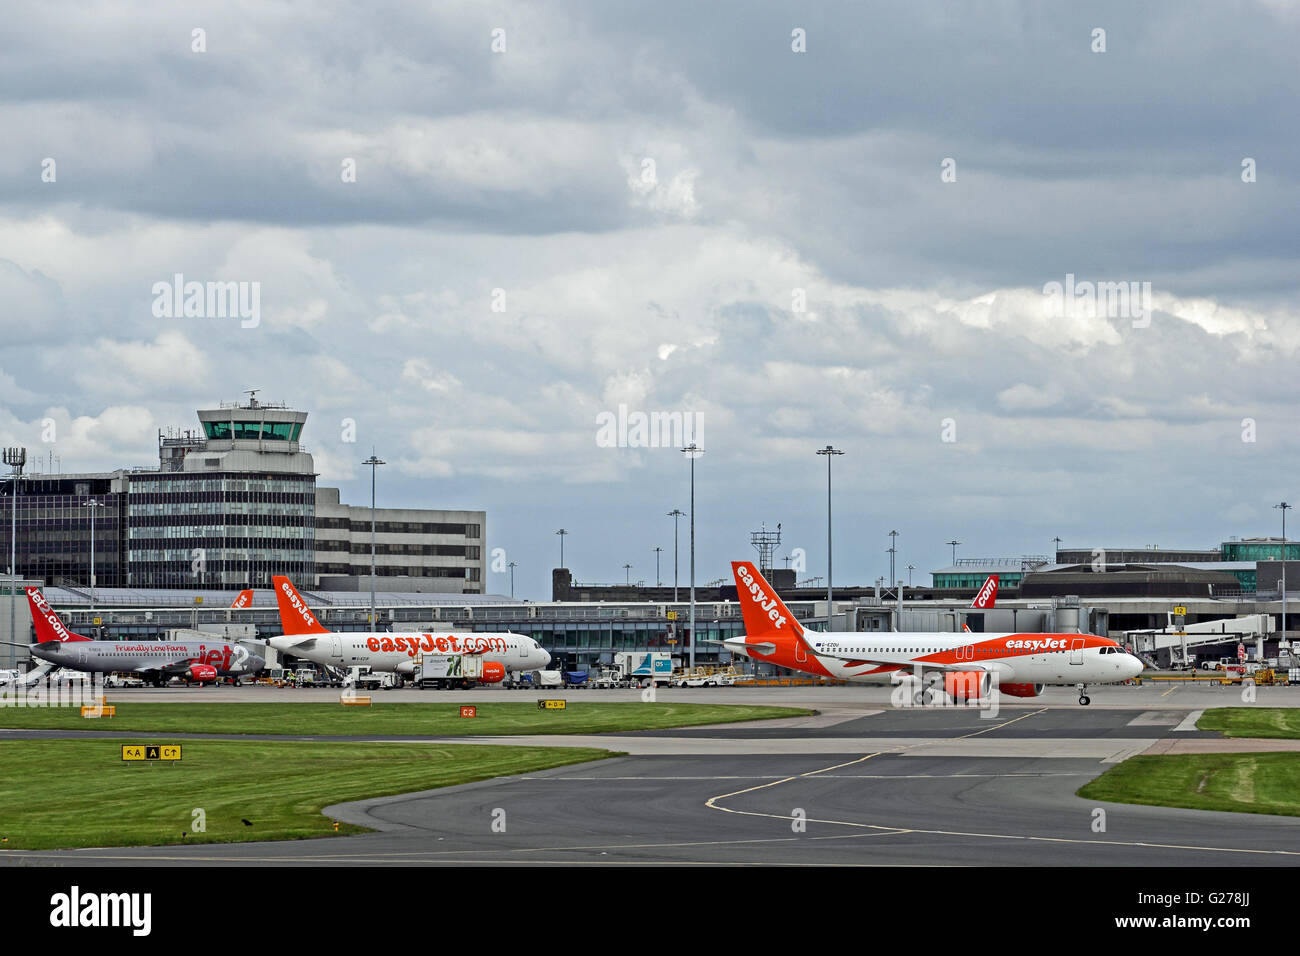 Easyjet airliners at terminal at Manchester International Airport - Stock Image